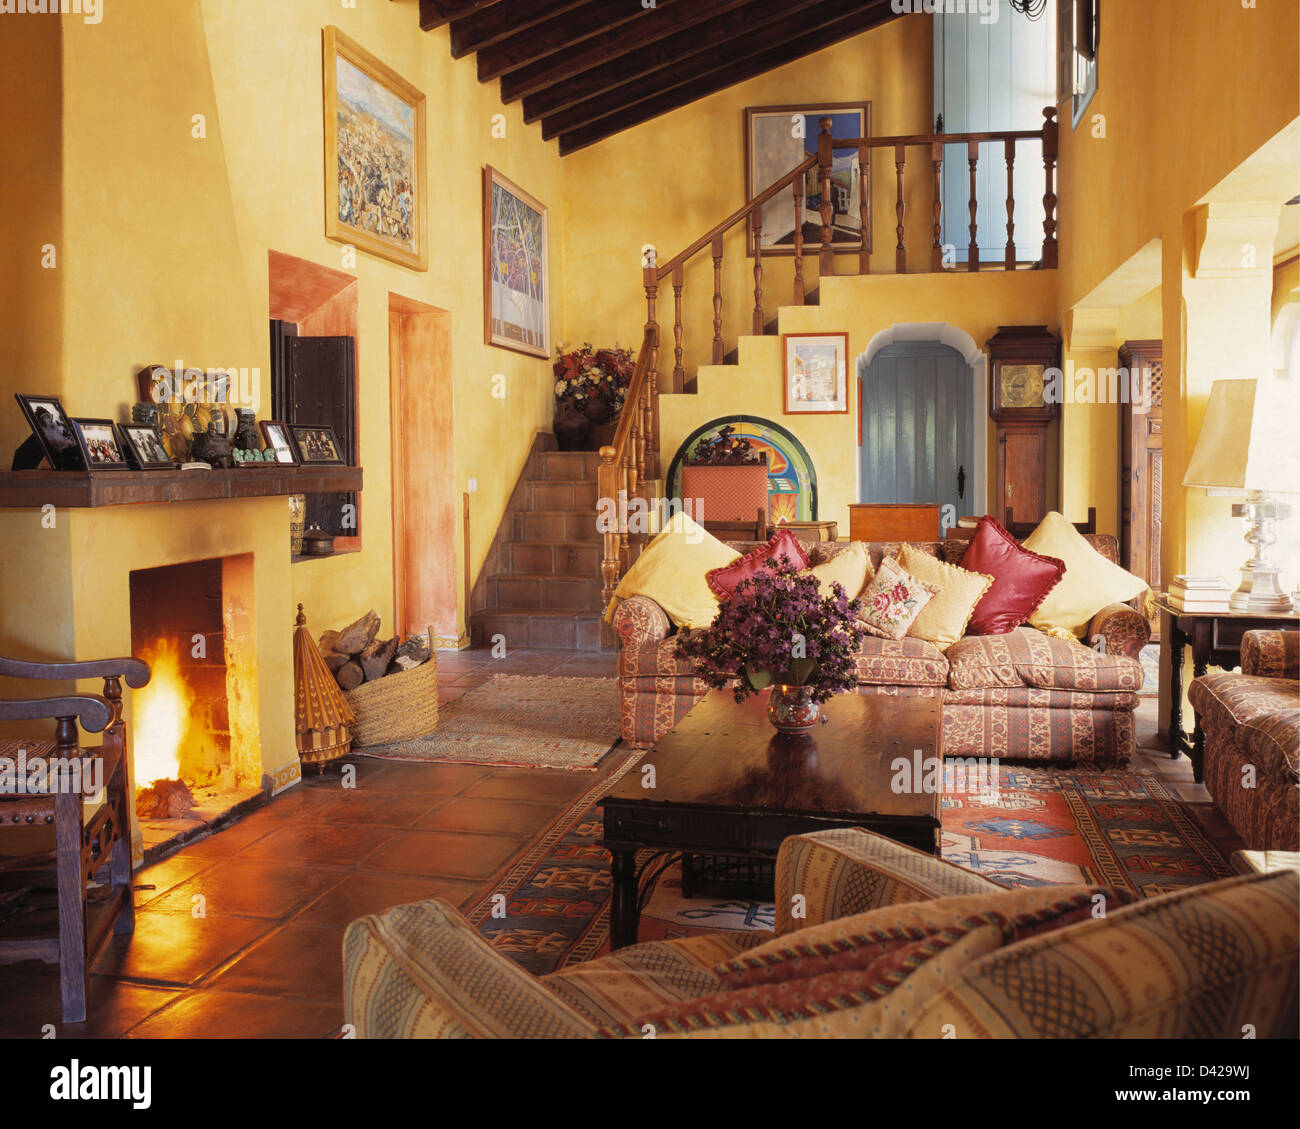 Comfortable Sofas In Yellow Living Room With Lighted Fire In Fireplace In  Traditional Spanish Villa